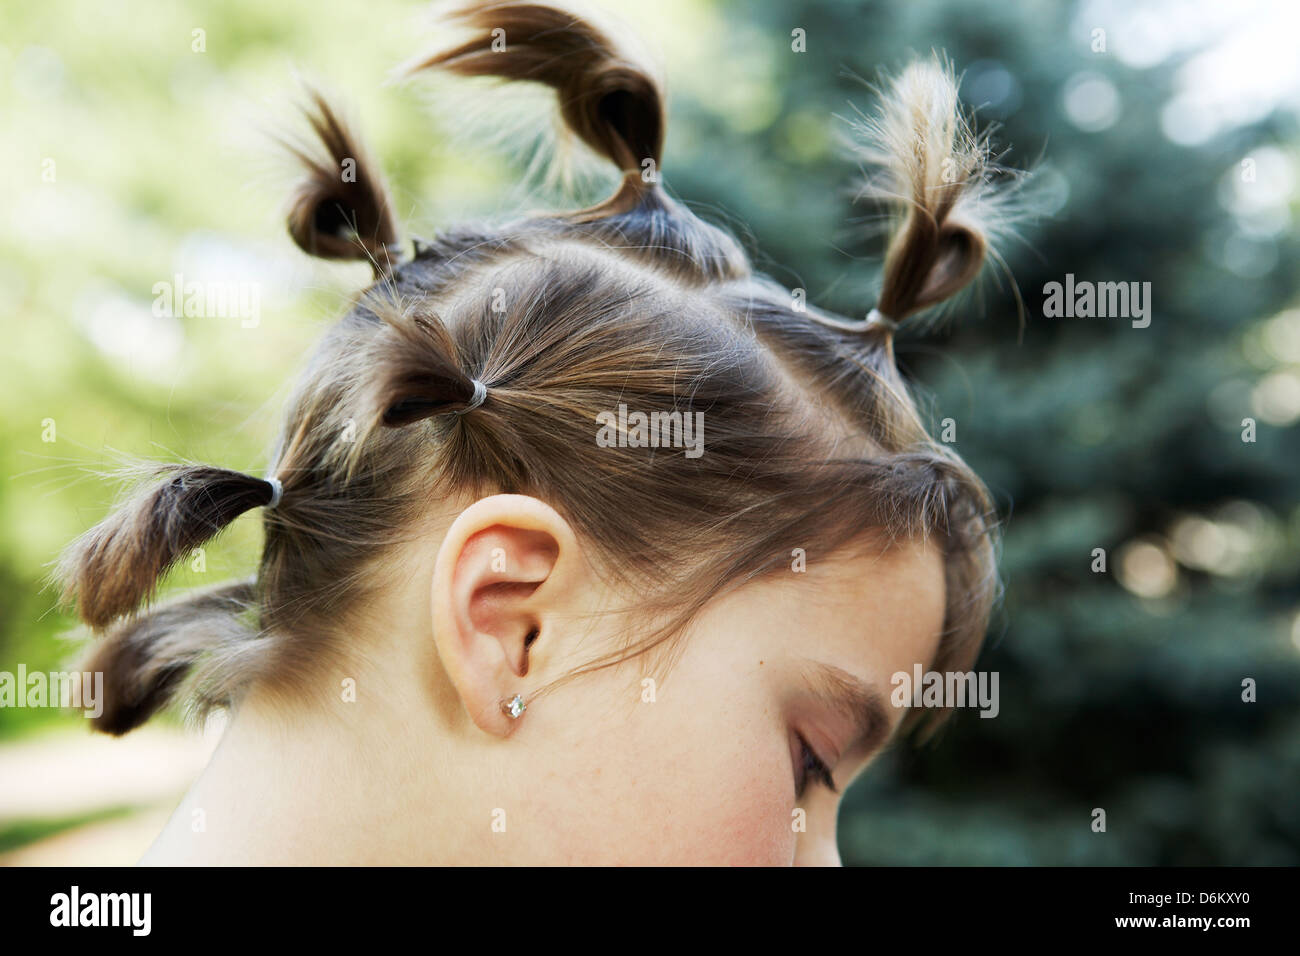 8 year old girl with pig tails - Stock Image